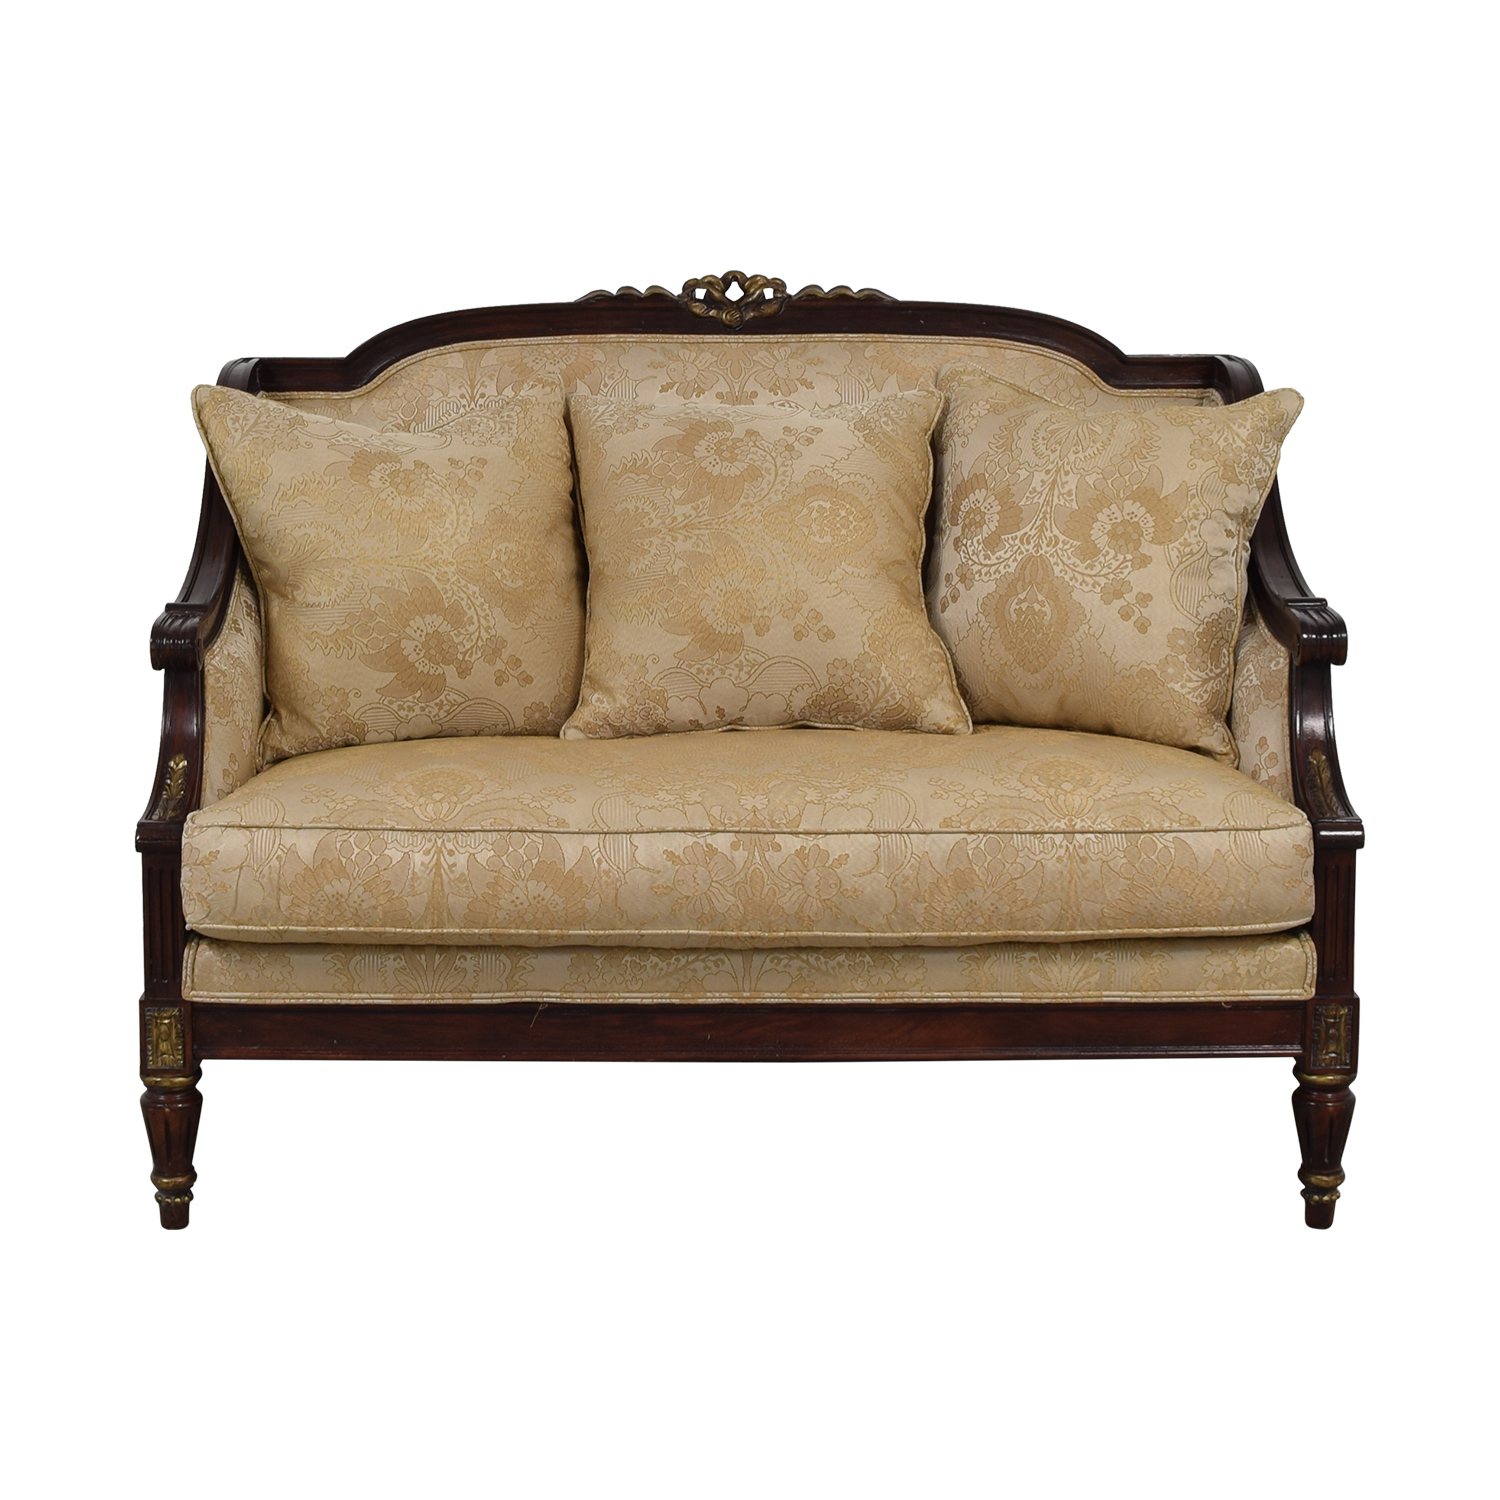 Jeffco Furniture Jeffco Furniture Beige Jacquard and Wood Love Seat